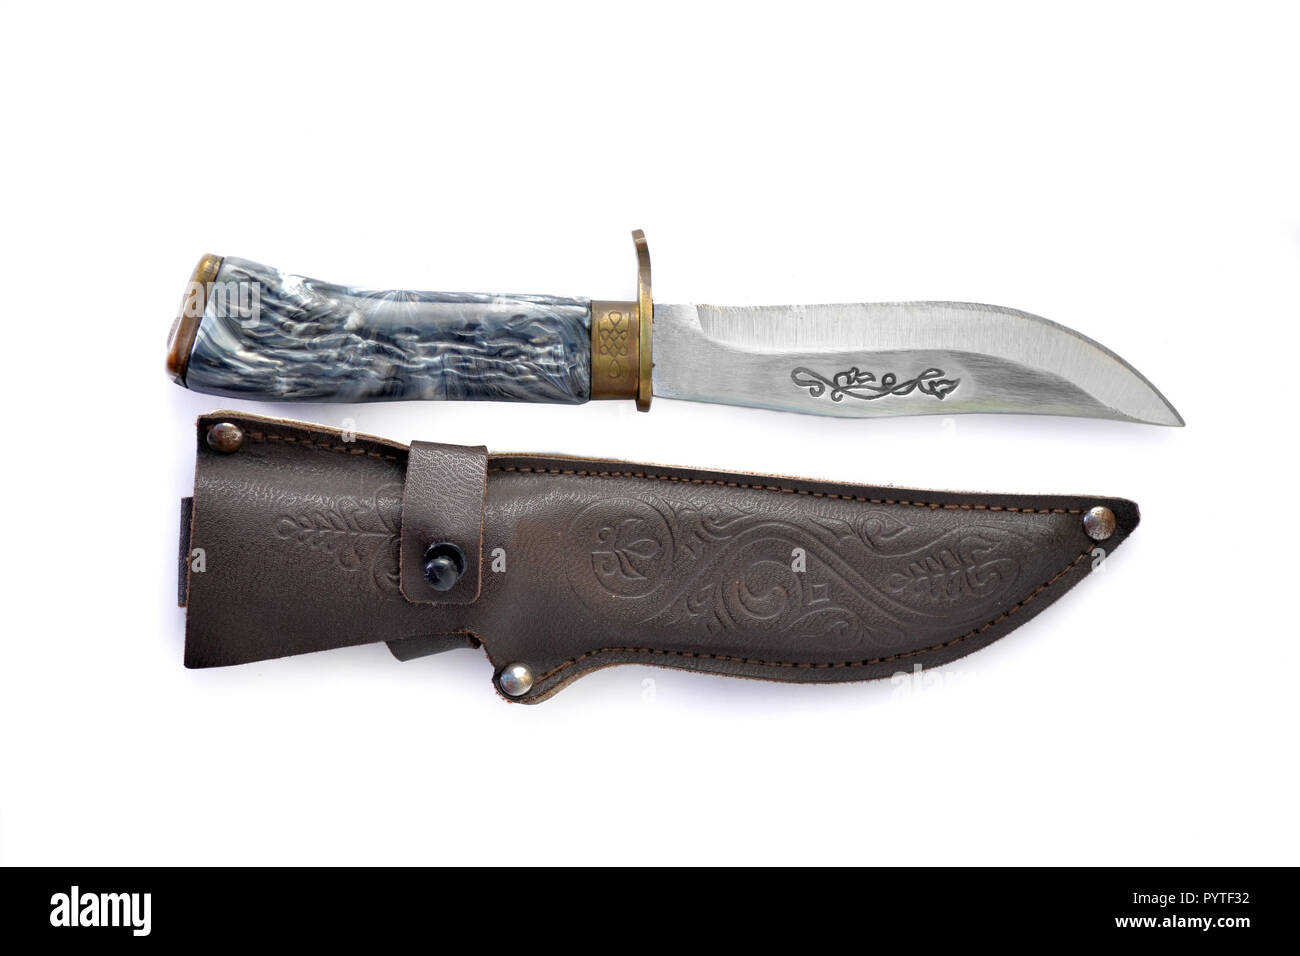 Knife with grey handle for hunting and survival and brown leather sheath on white isolated background. - Stock Image